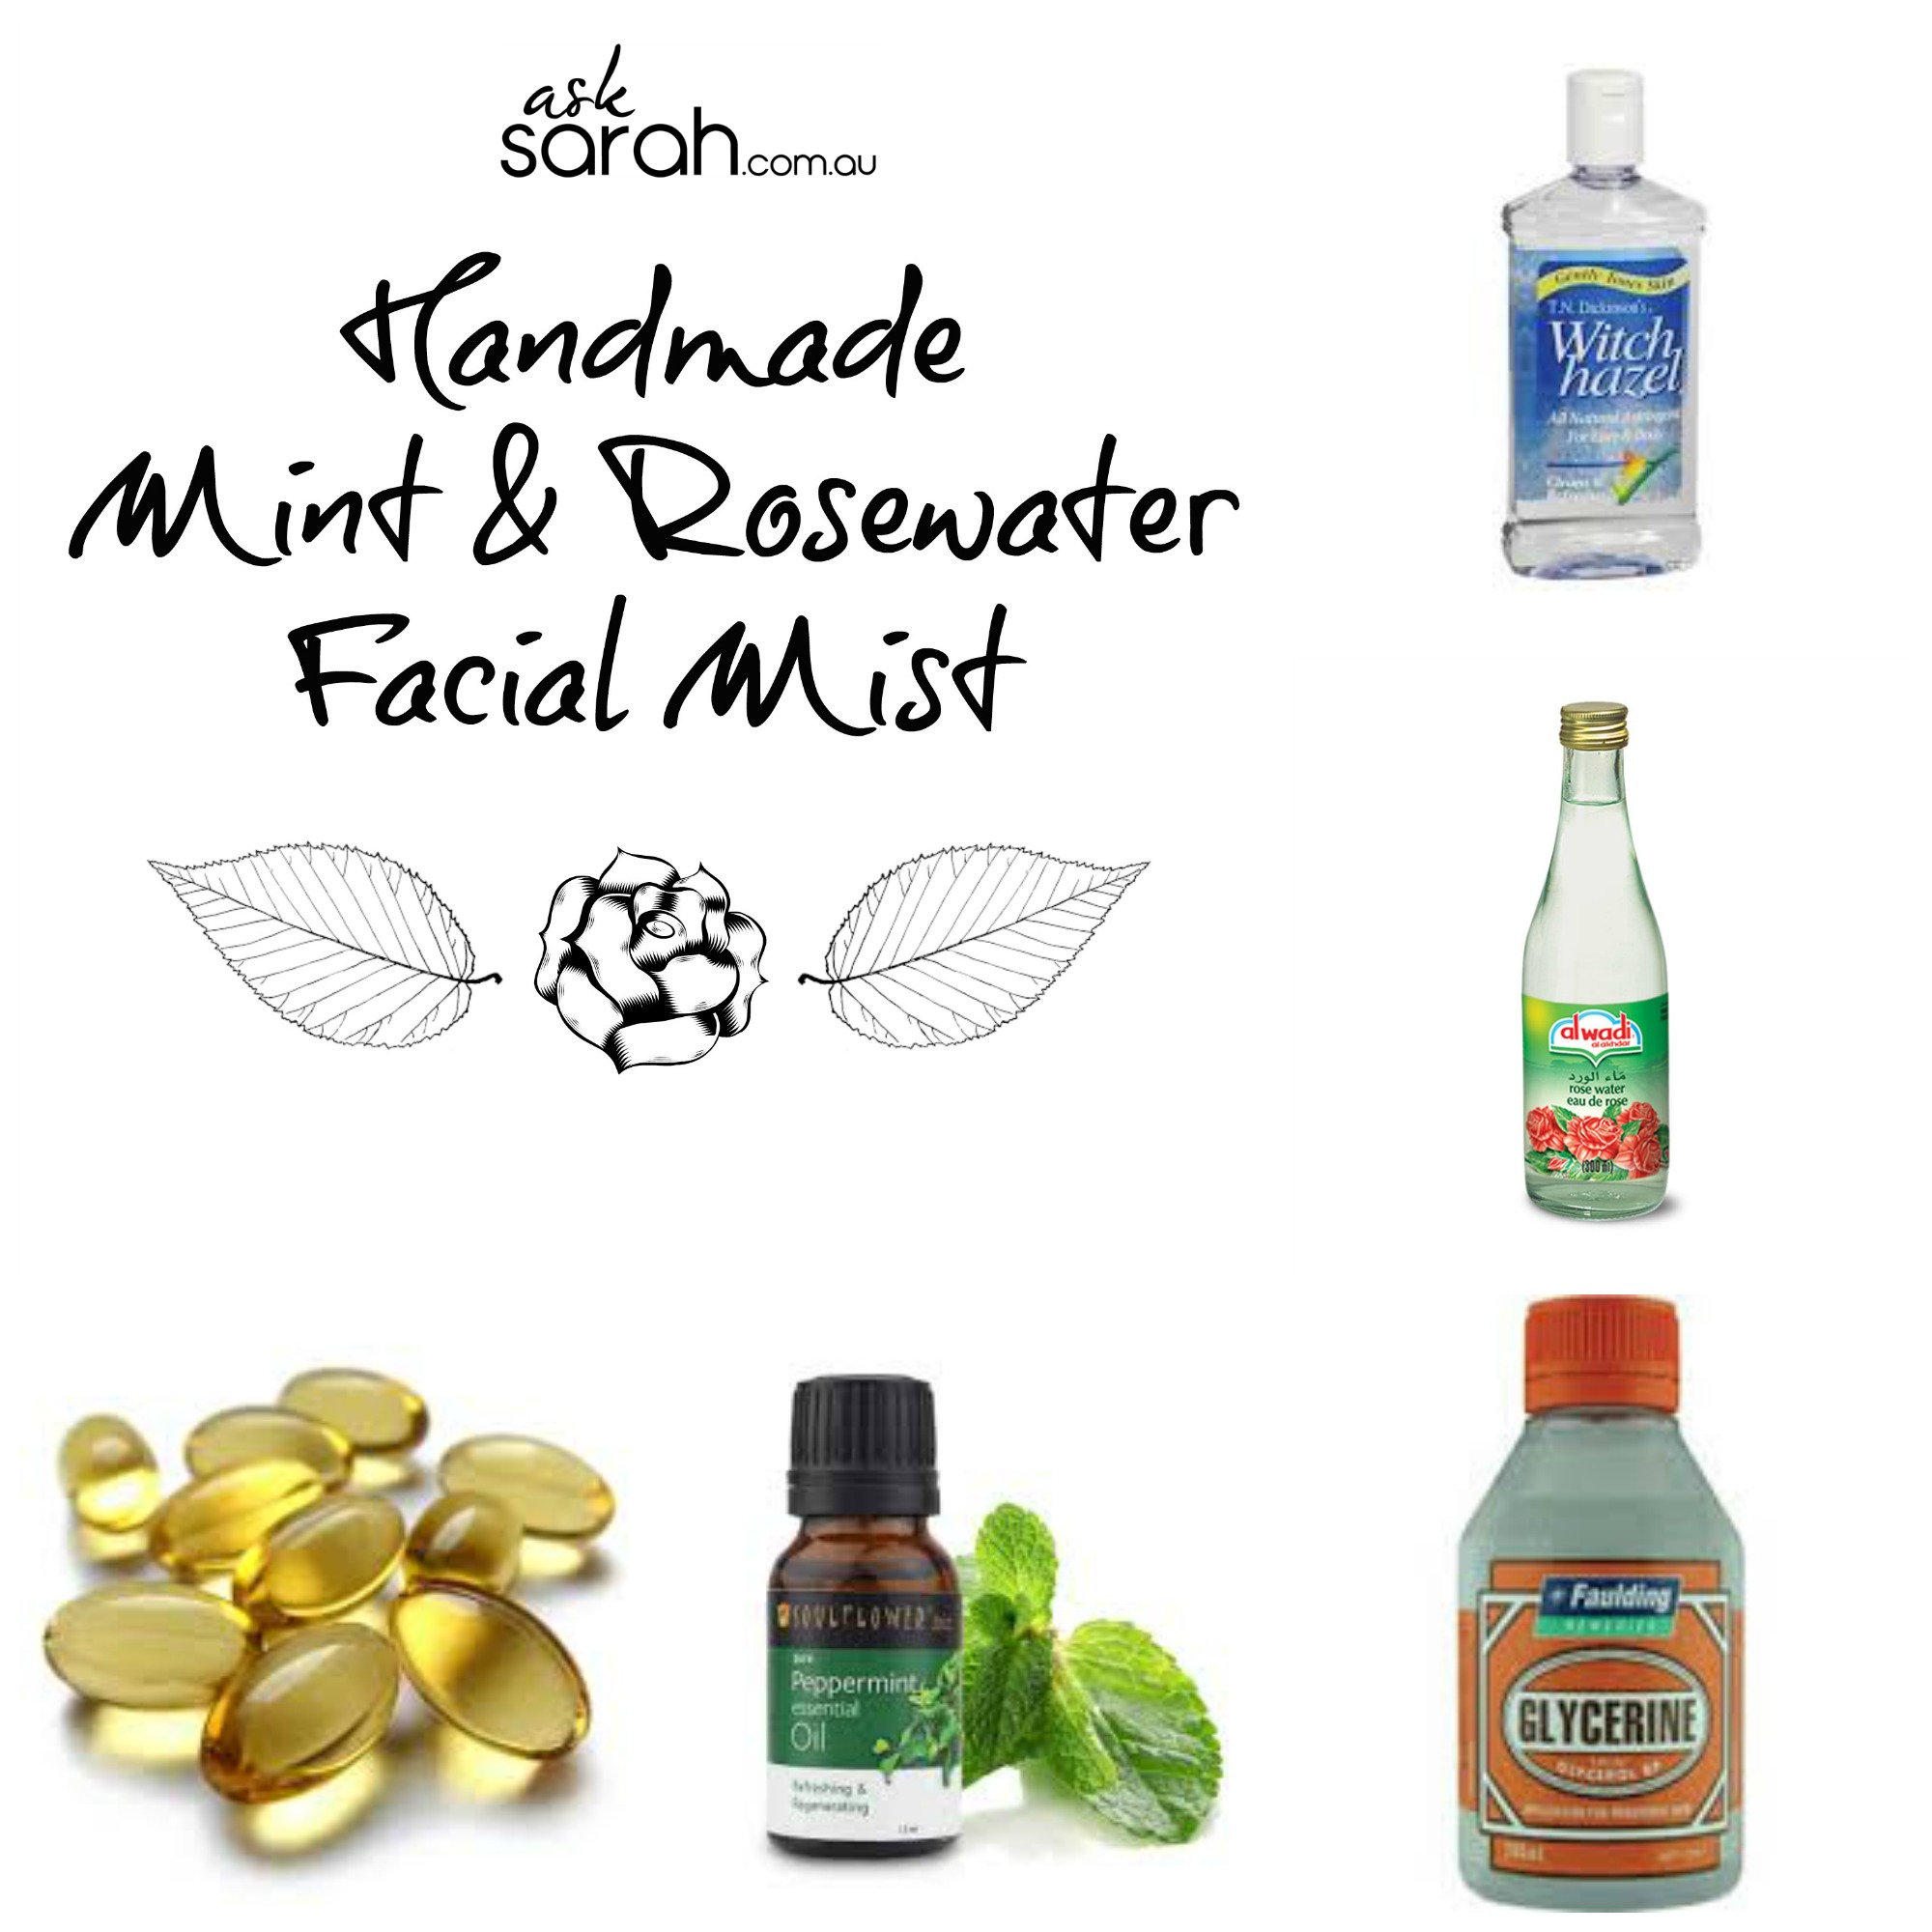 FDIY: Mint & Rosewater Facial Mist {Free Labels & Easy Recipe}